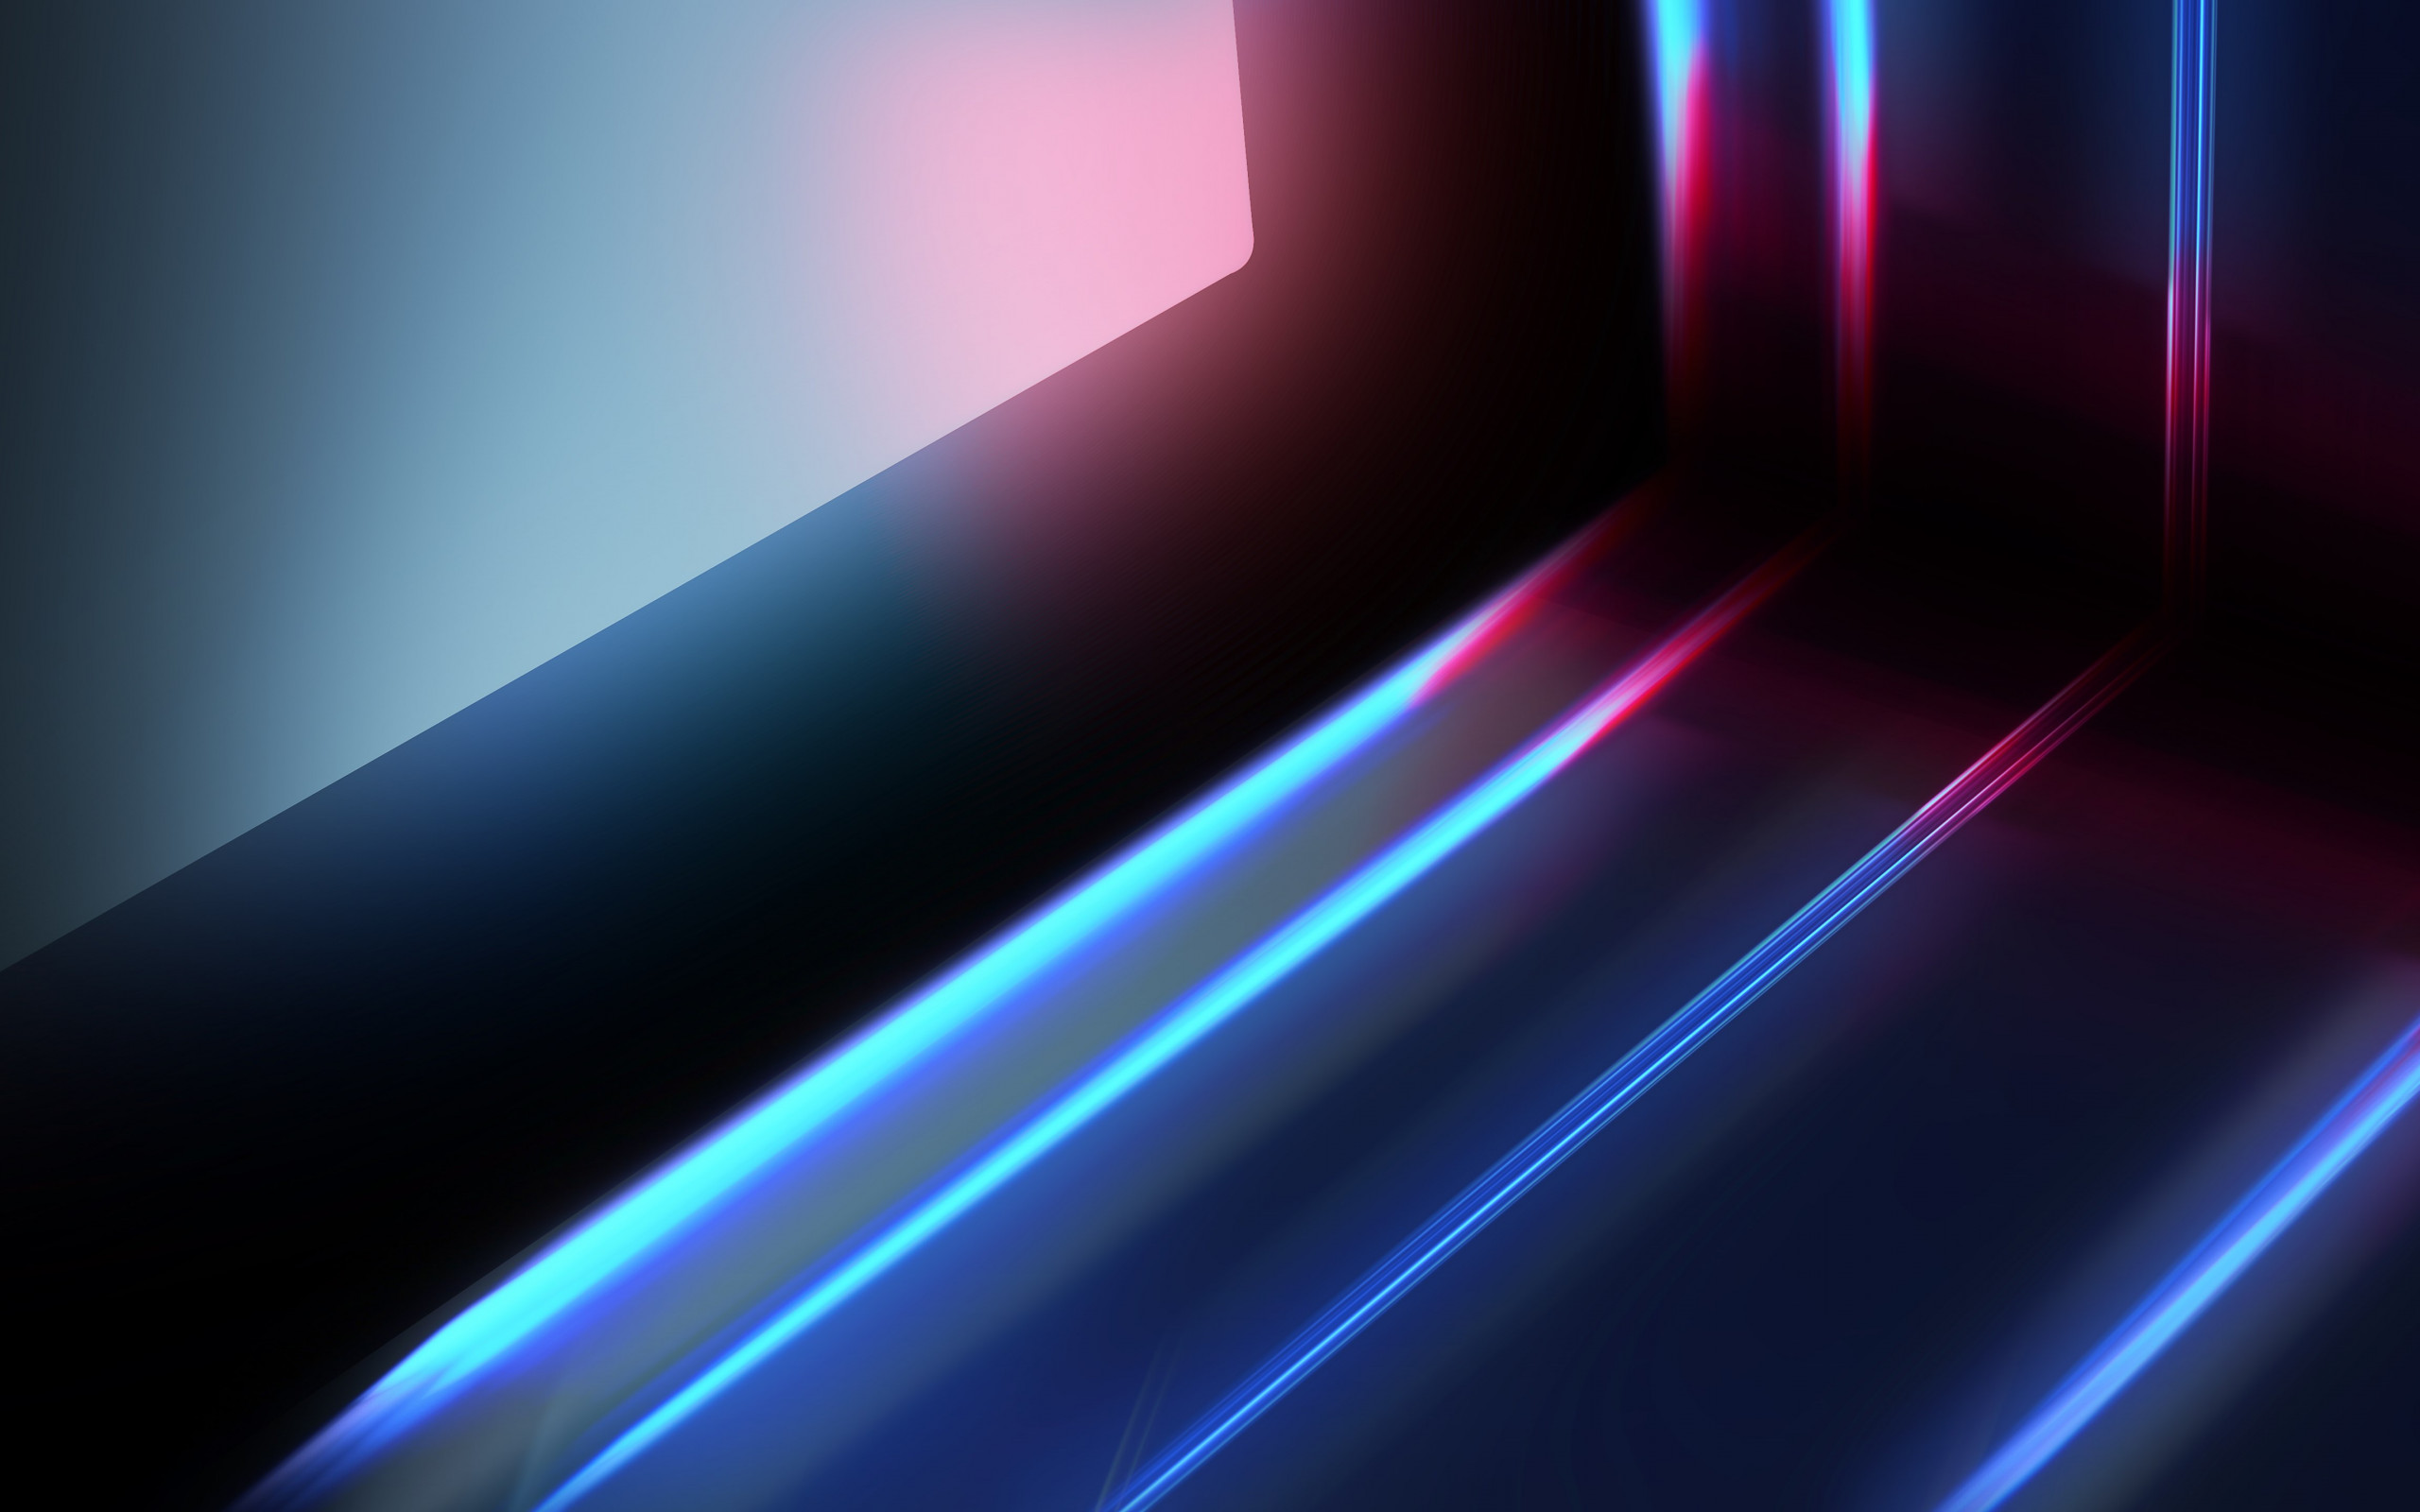 Abstract blue red lights wallpaper 2560x1600